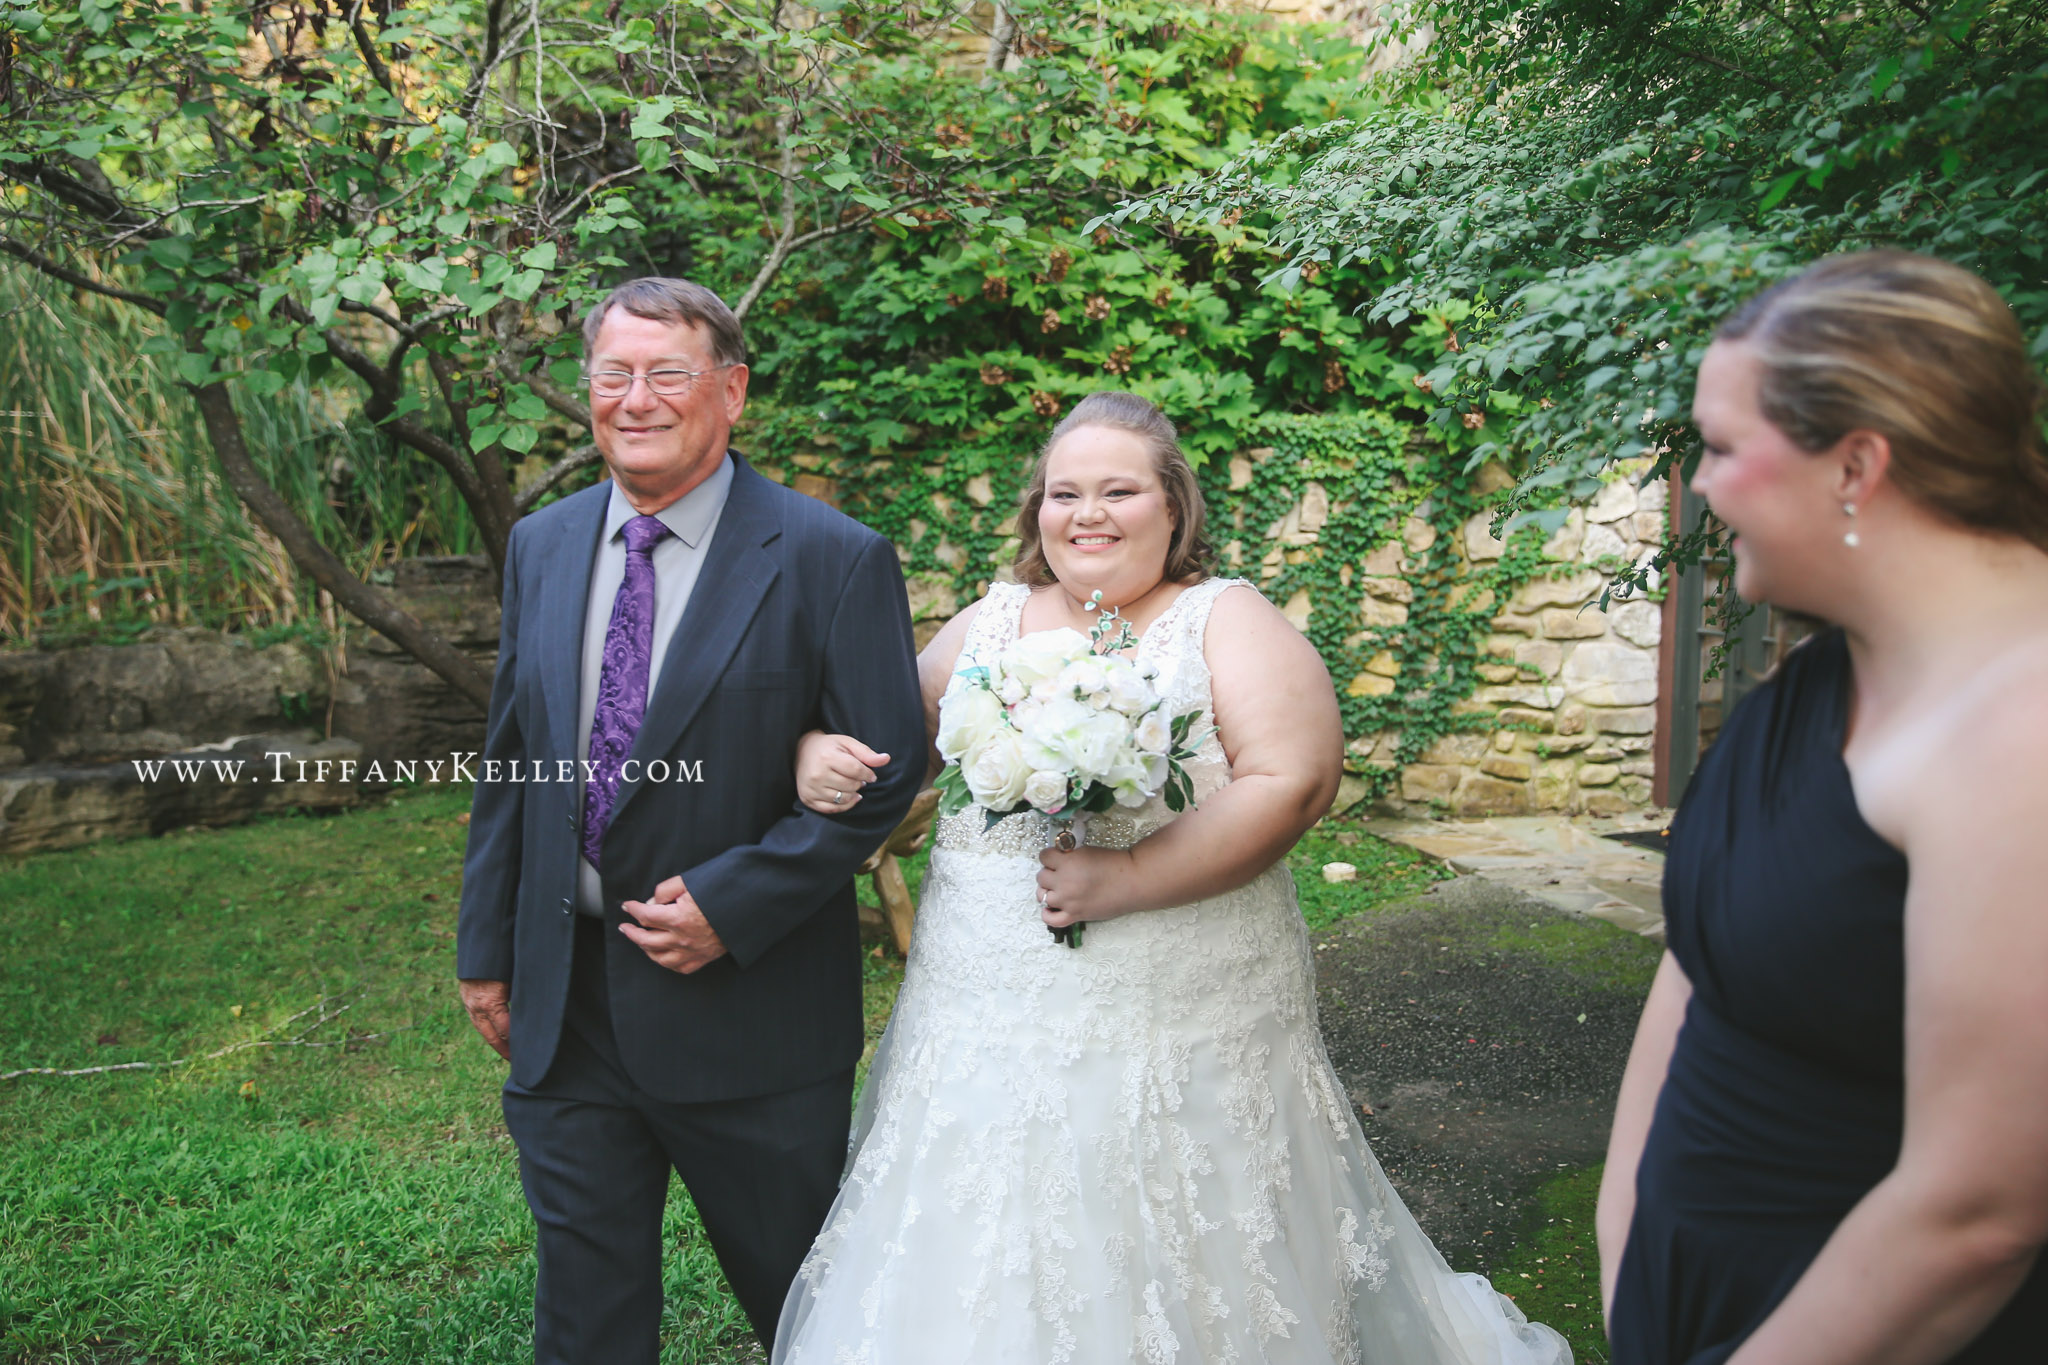 branson-missouri-big-cedar-lodge-wedding-photographer-tiffany-kelley-photography-02